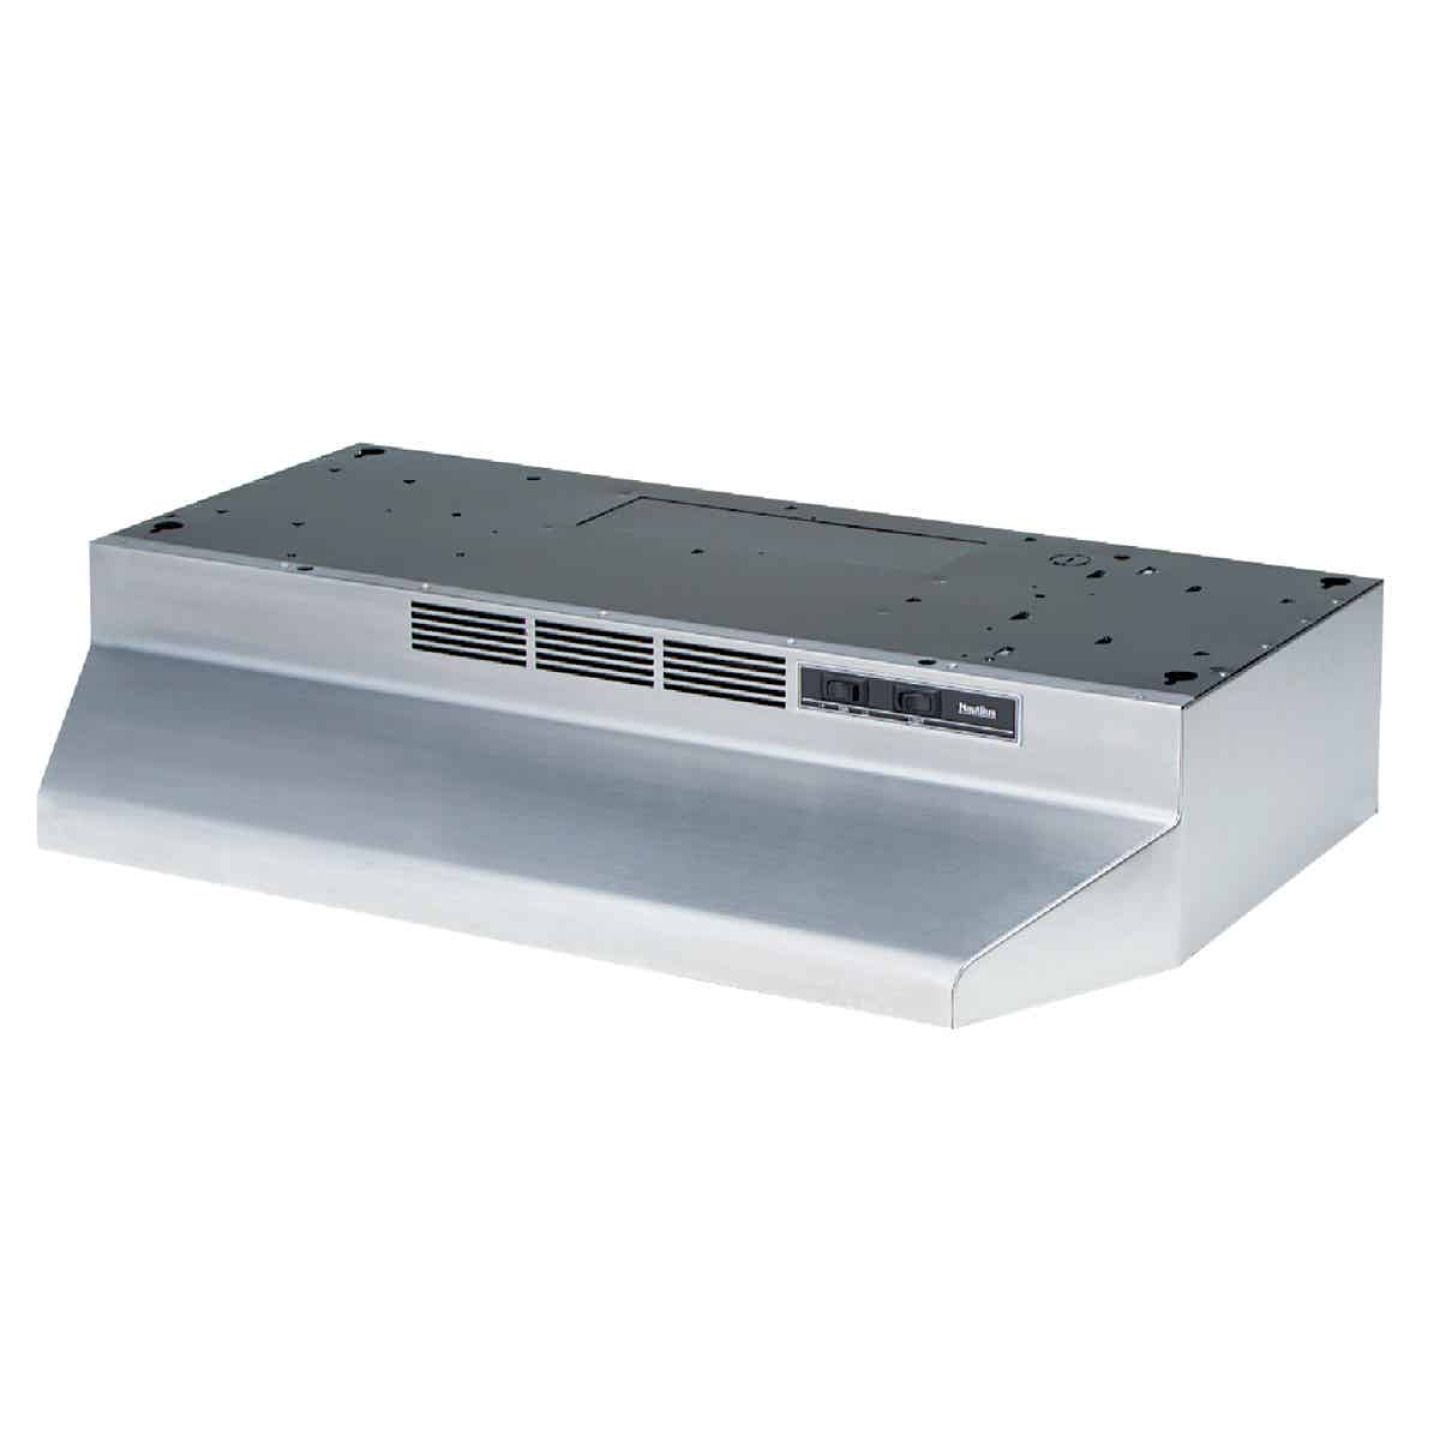 Broan-Nutone 41000 Series 30 In. Non-Ducted Stainless Steel Range Hood Image 1